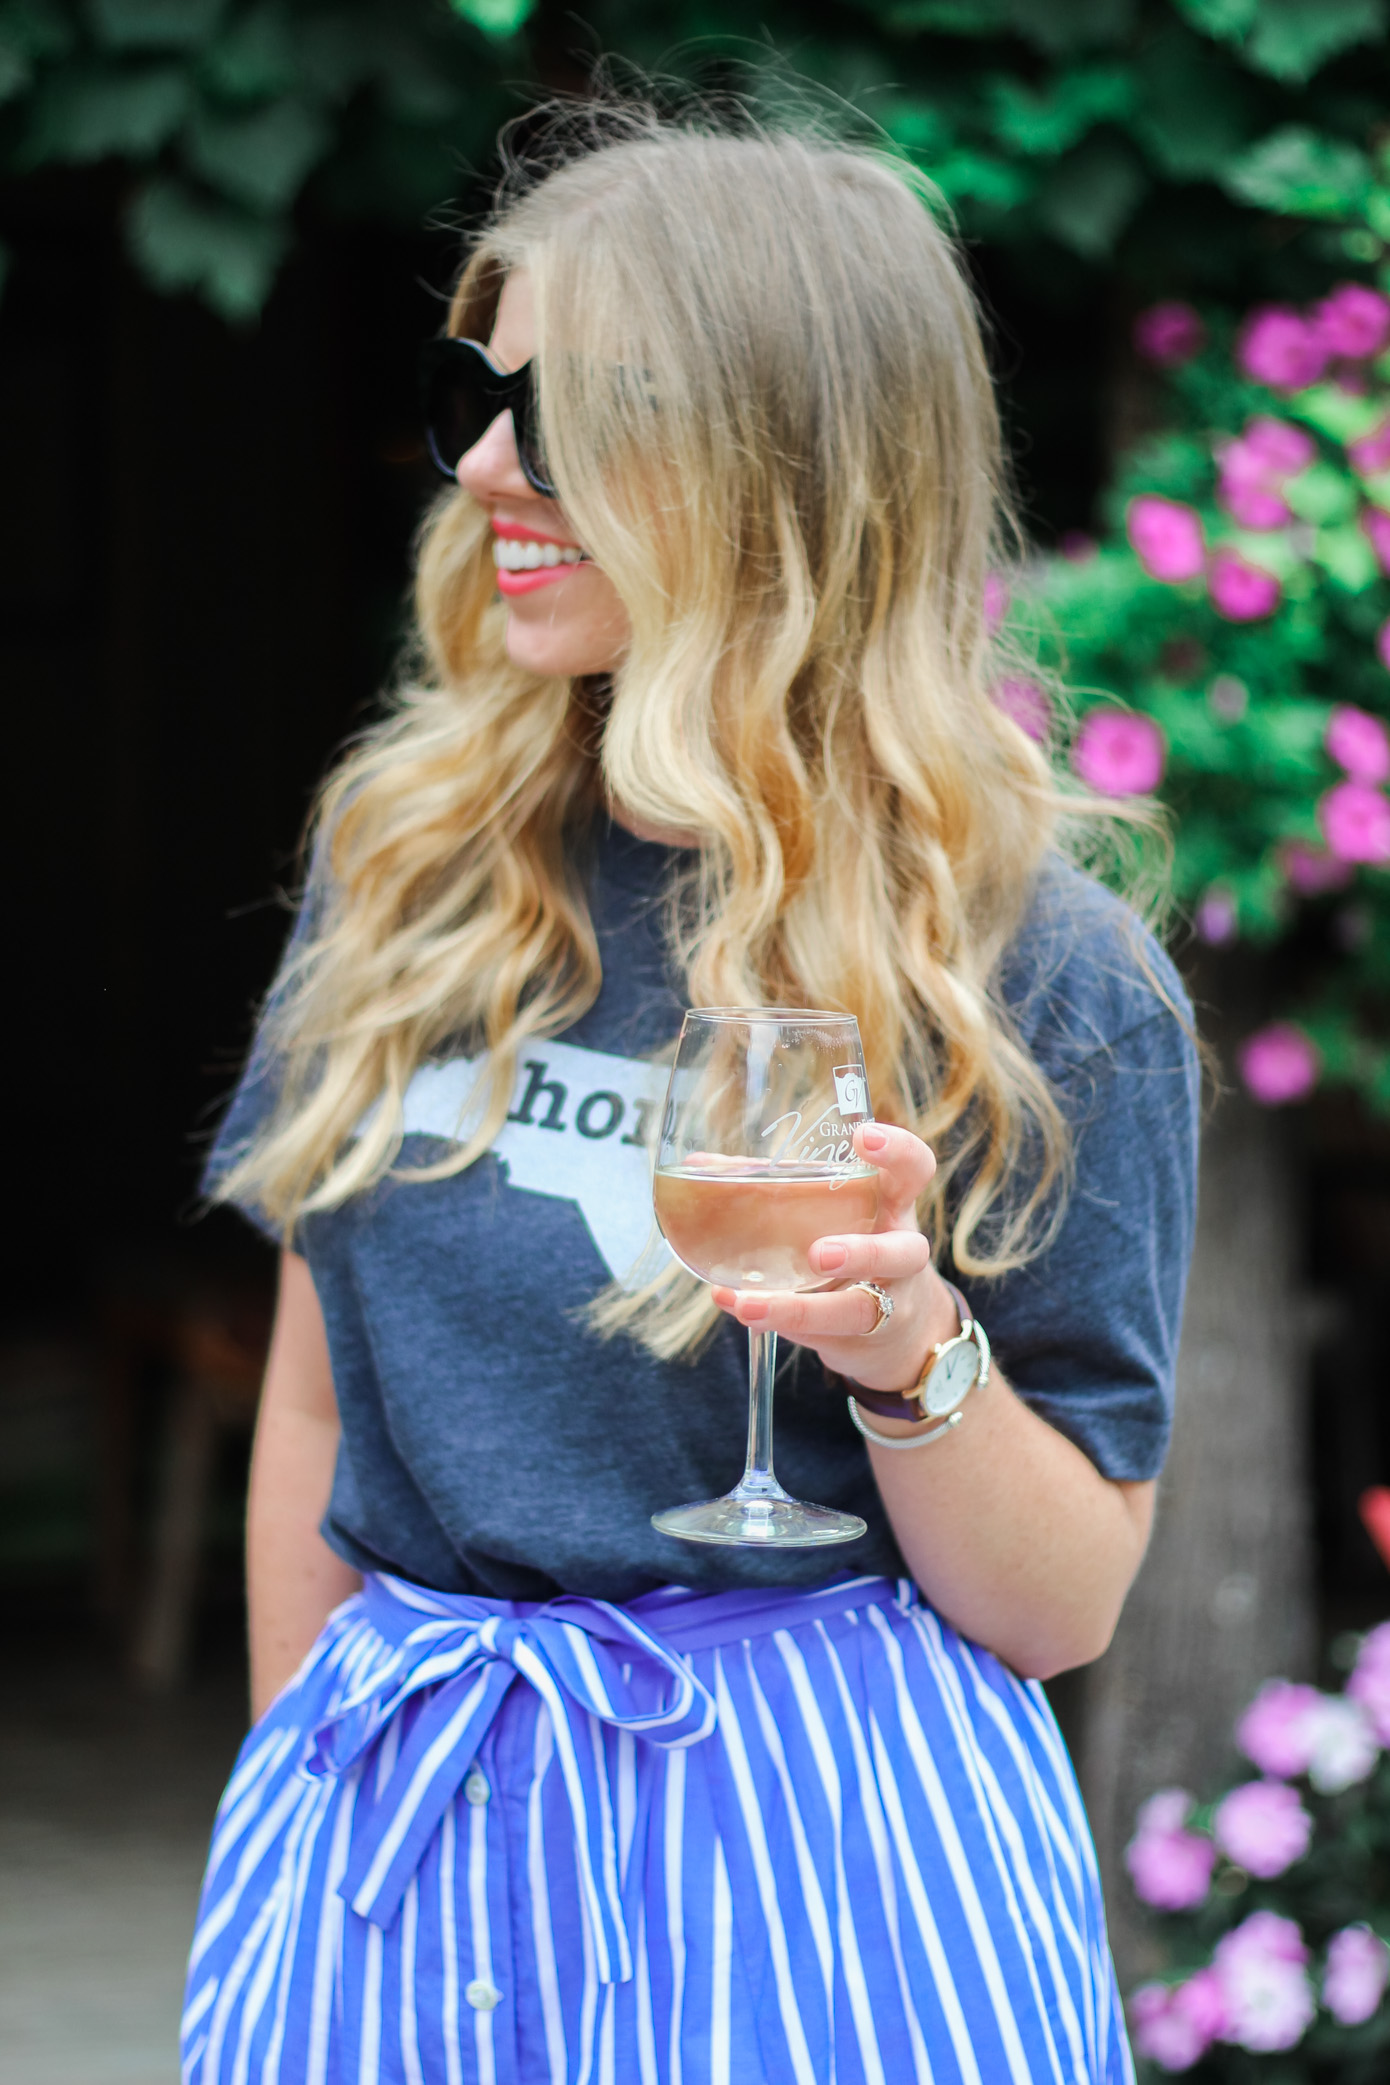 Home Tee Shirt | The Home T | What to Wear to a Winery | Louella Reese Life & Style Blog